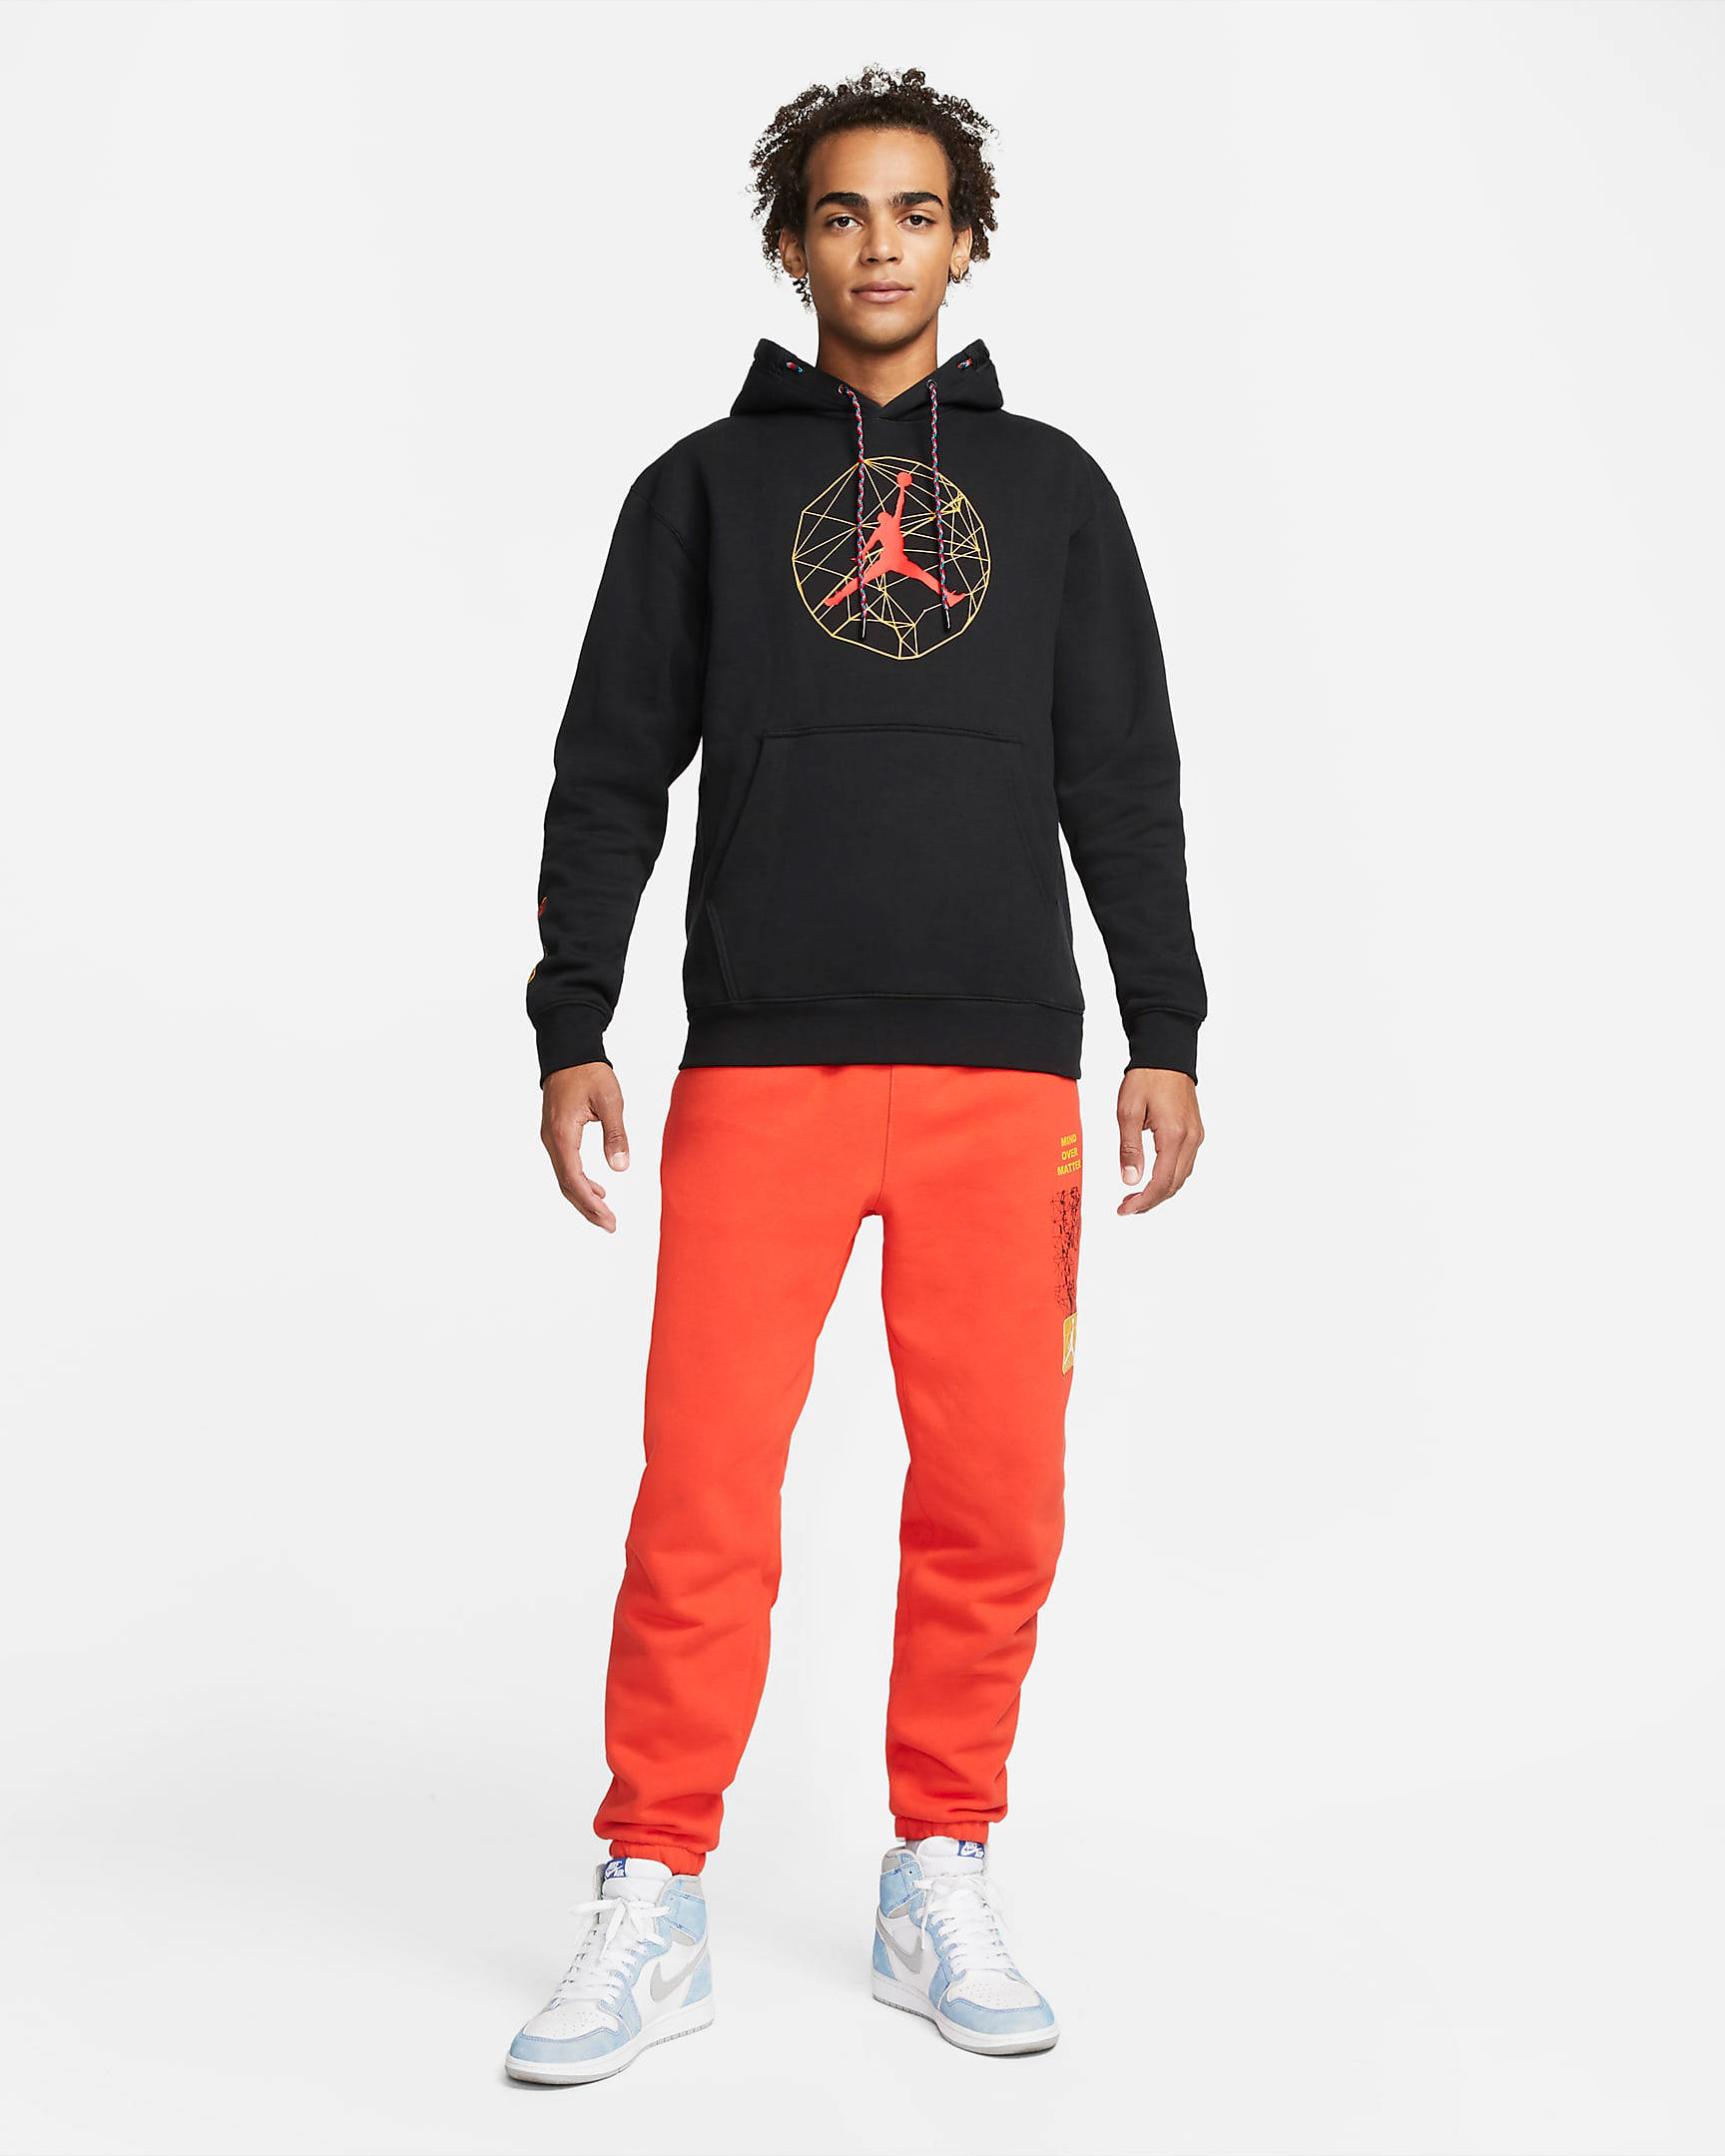 jordan-essentials-mountainside-hoodie-black-chile-red-pants-outfit